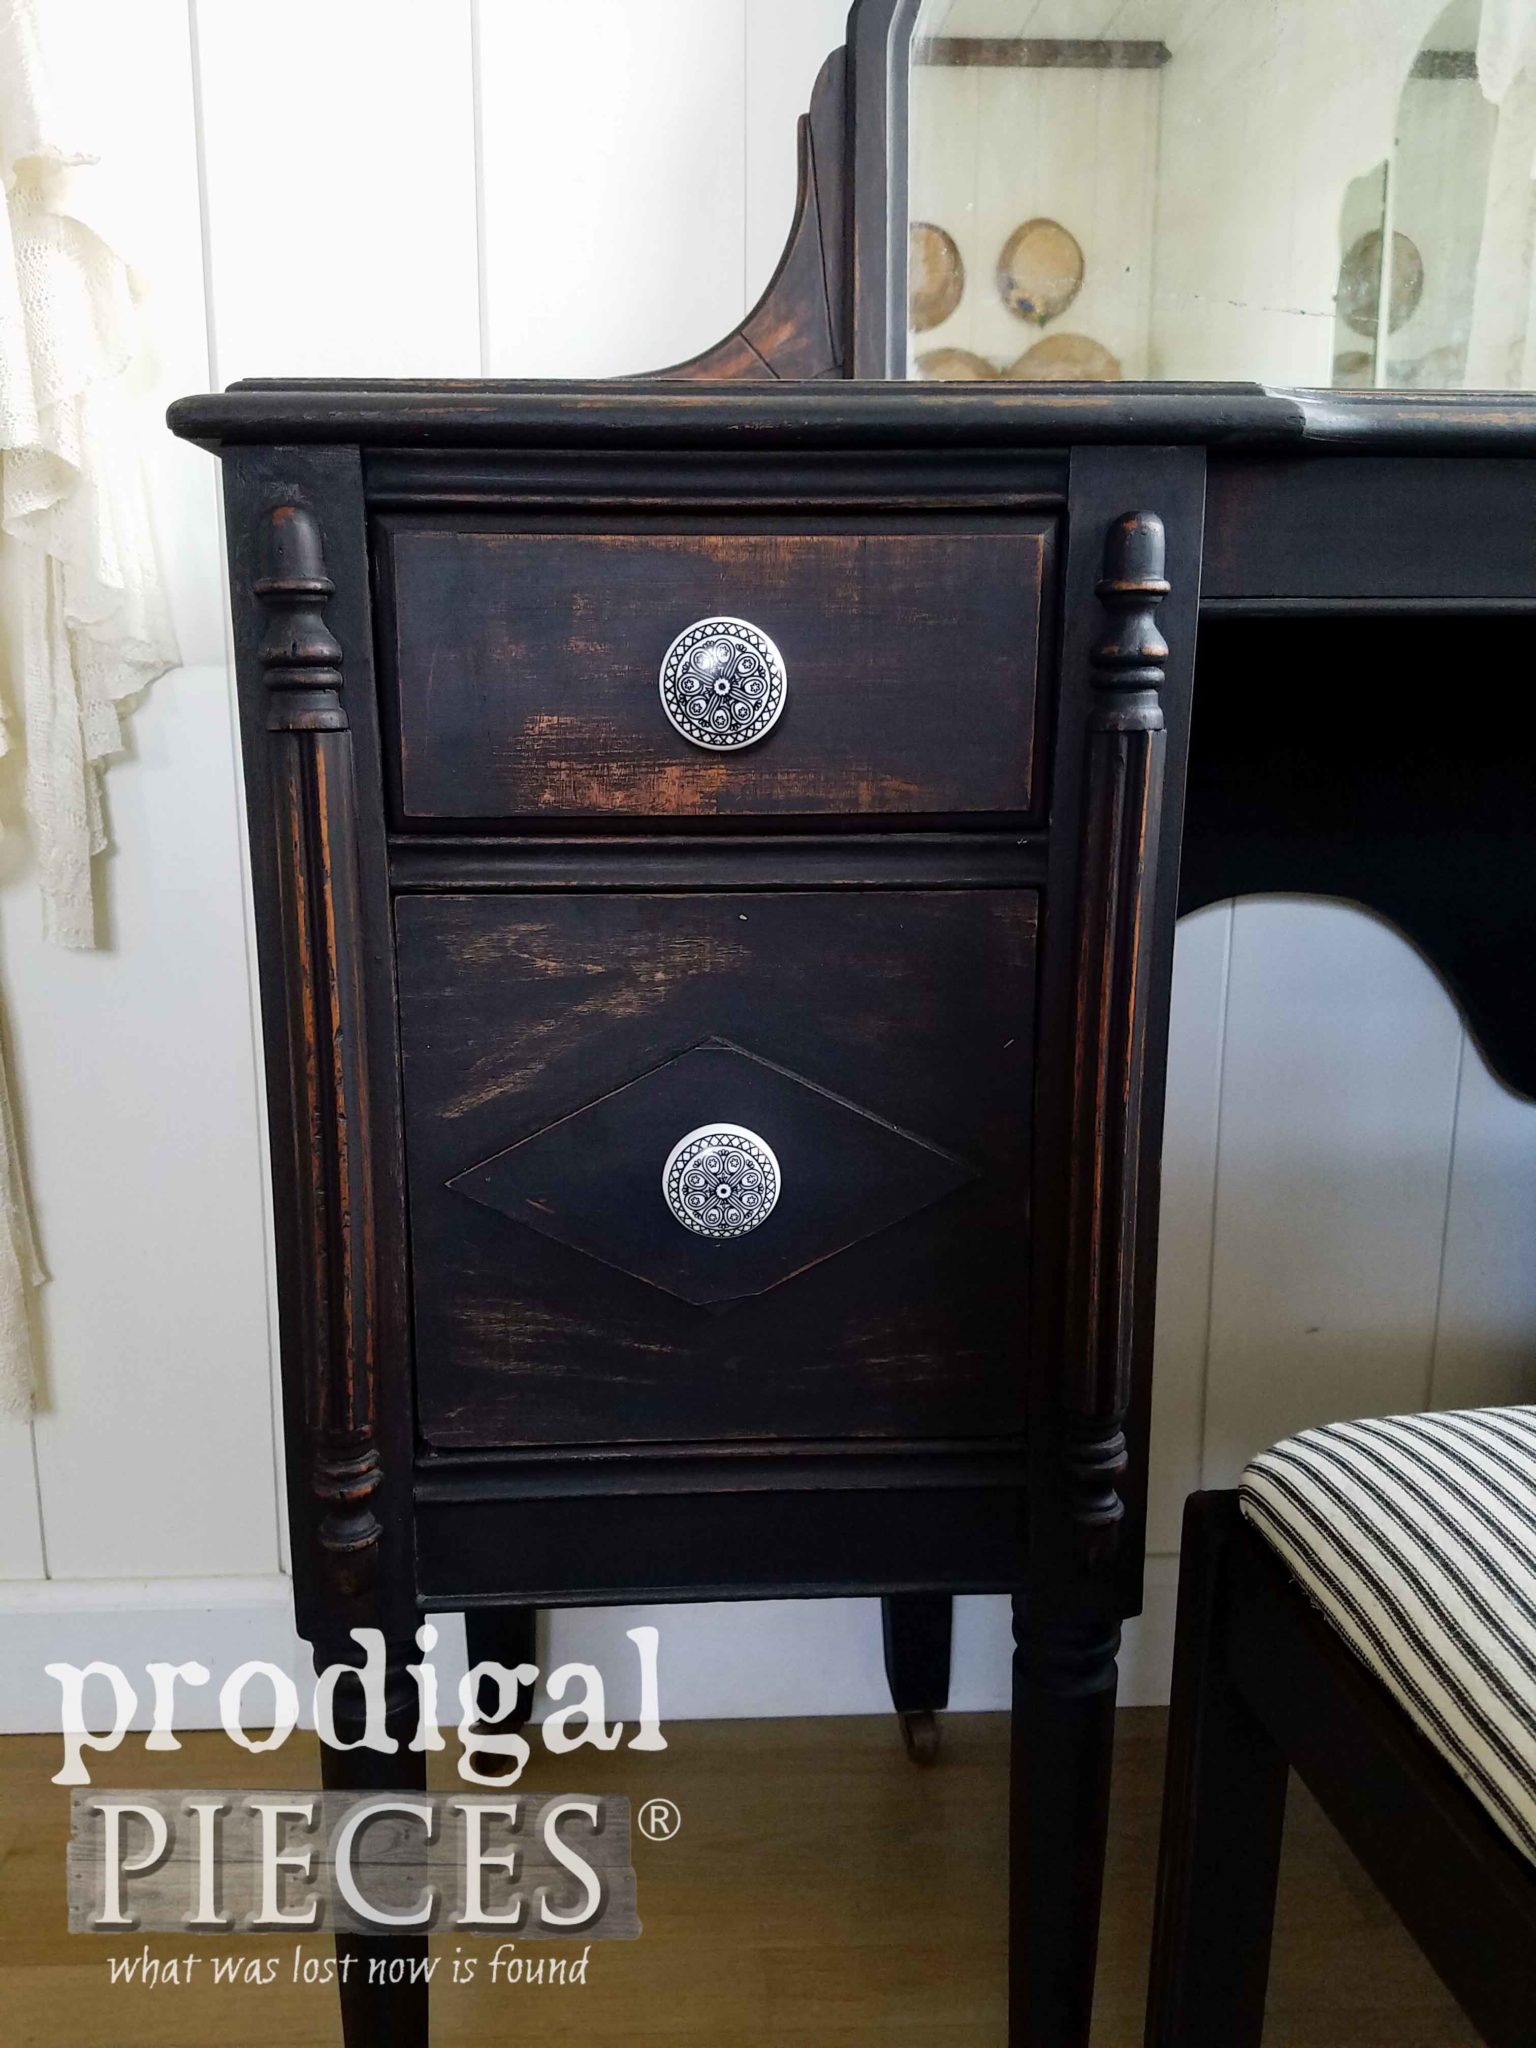 Porcelain Painted Knobs with Black Scrollwork by Larissa of Prodigal Pieces | prodigalpieces.com